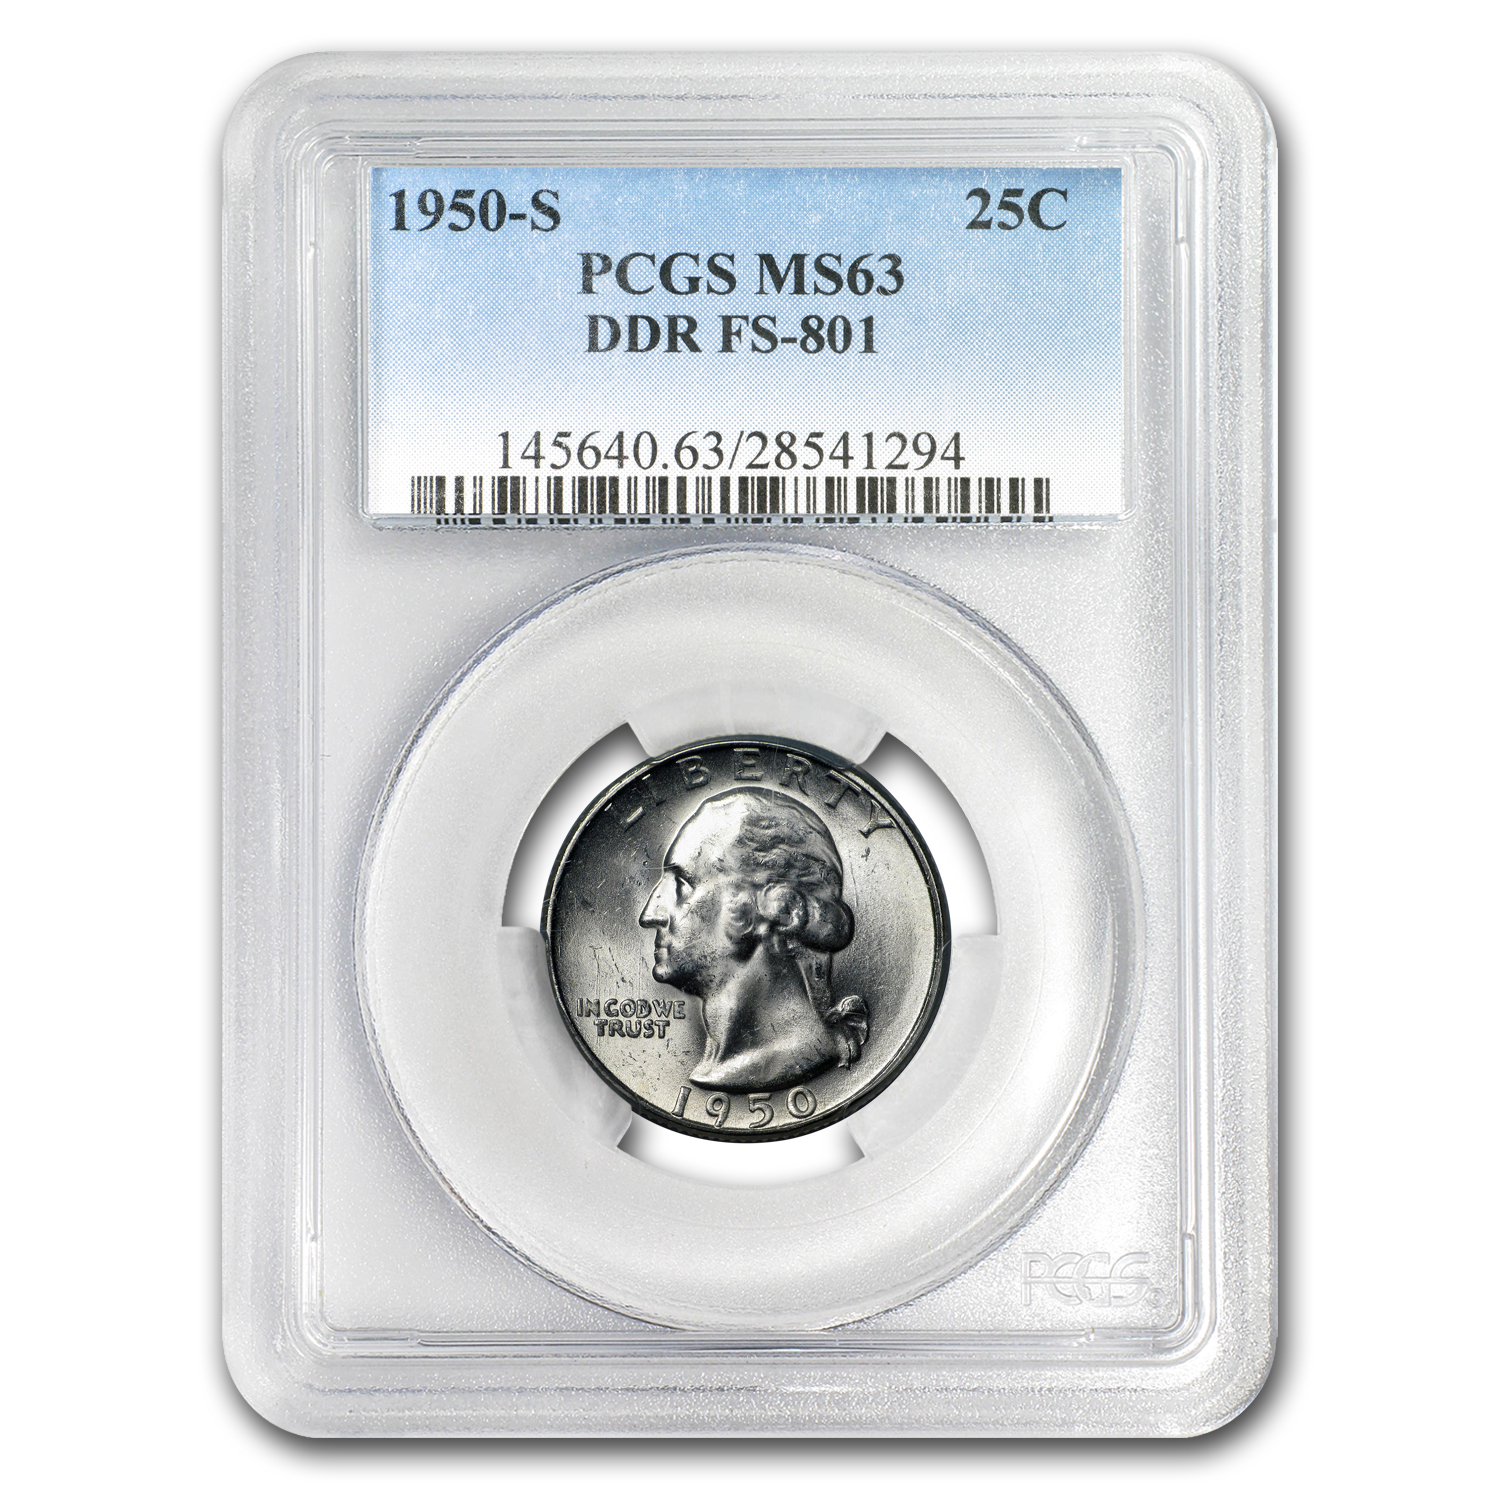 1950-S Washington Quarter MS-63 PCGS (Doubled Die Rev, FS-801)